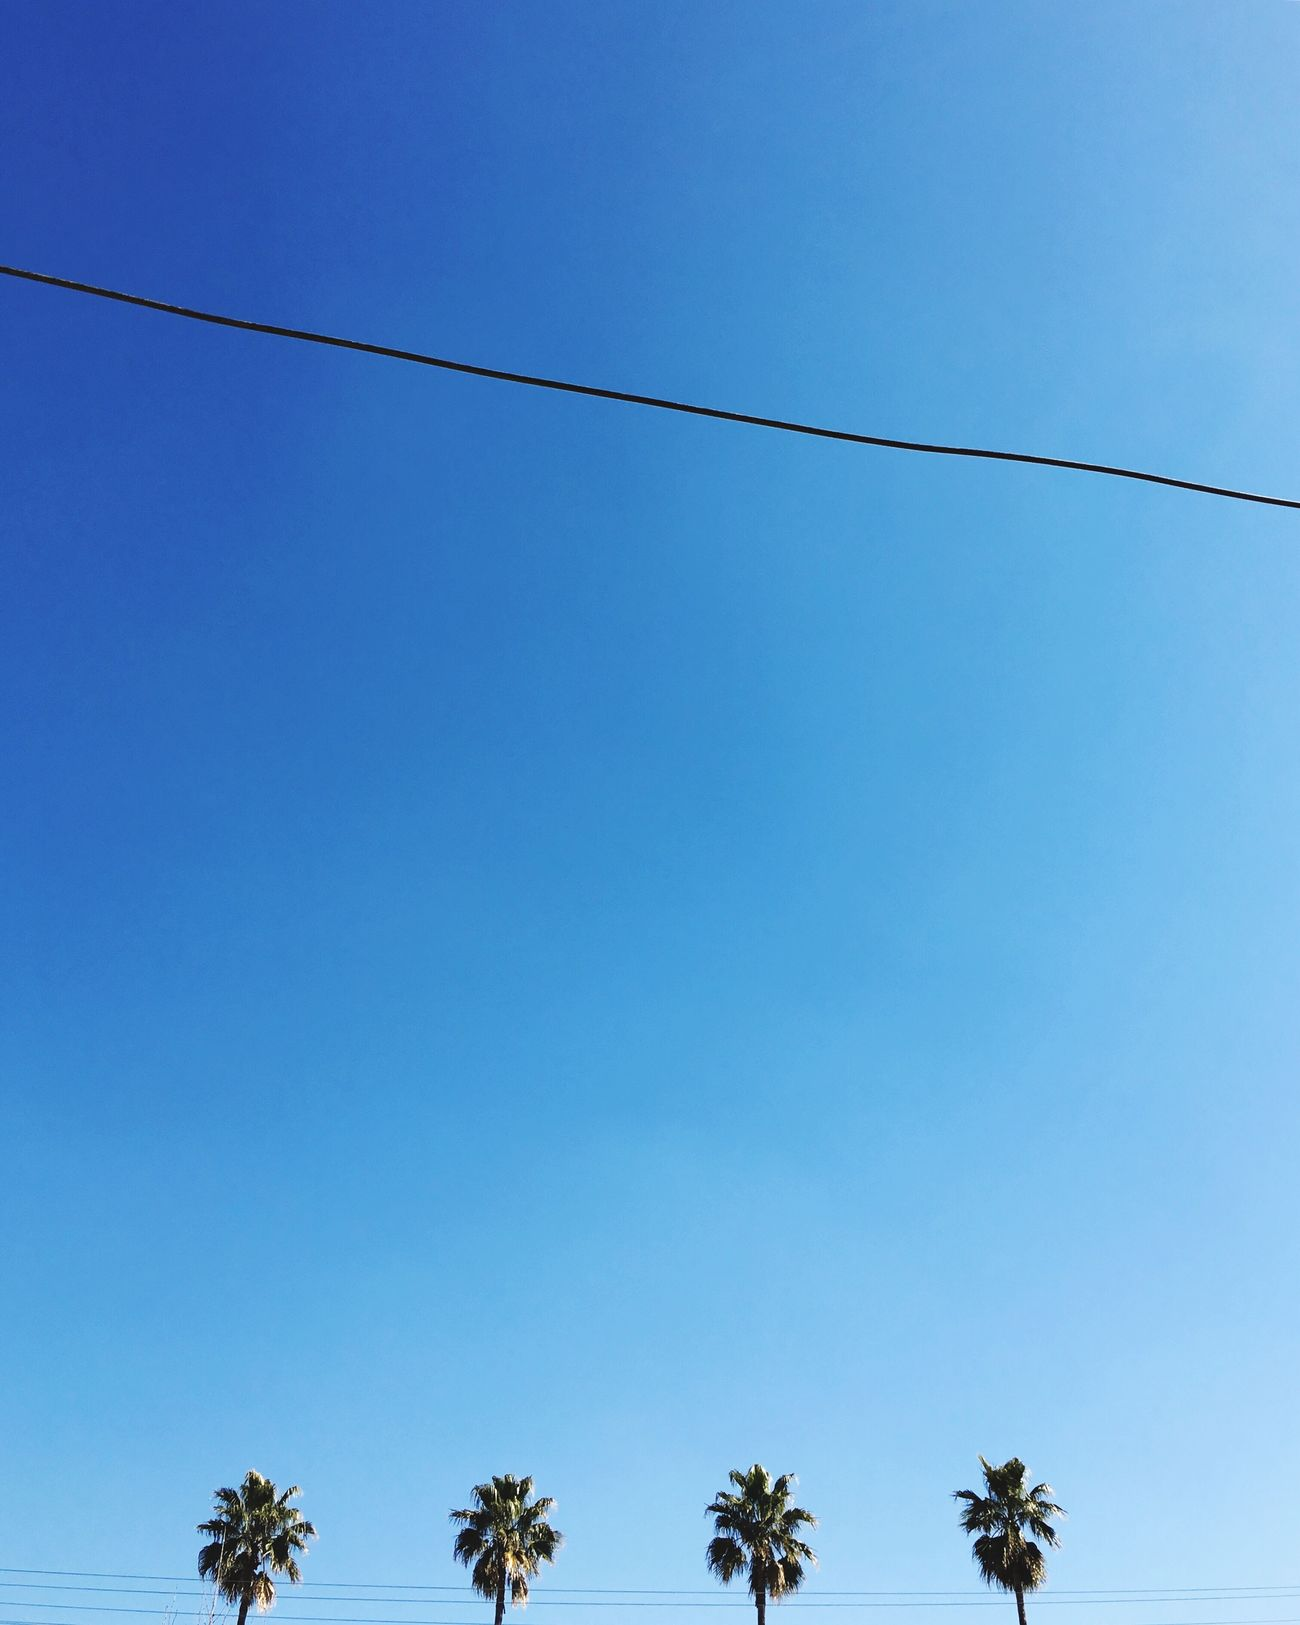 Minimalism Blue Low Angle View No People Clear Sky Cable Nature Sky Electricity  Power Line  Day Outdoors Power Supply Tree